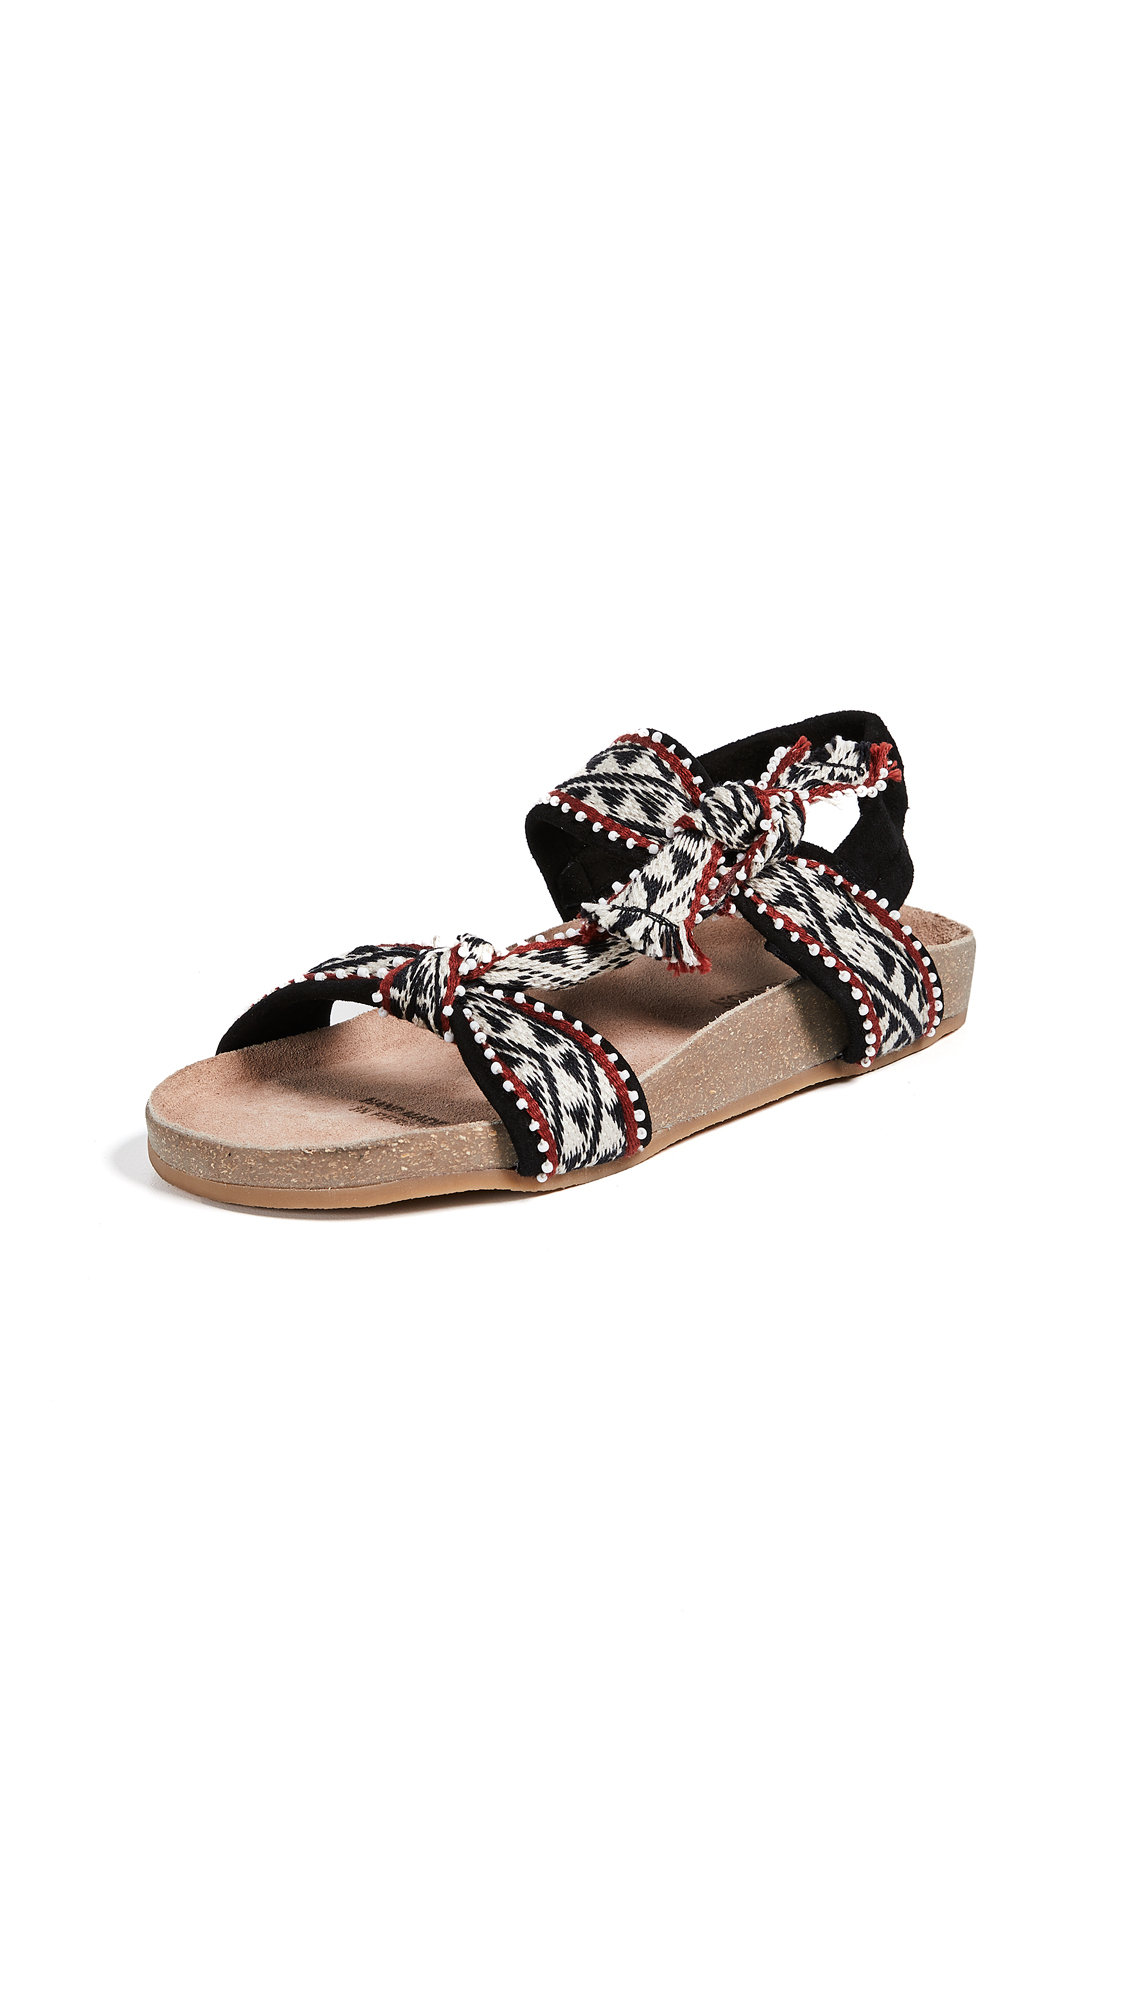 Ulla Johnson Abril Sandals - Tribal